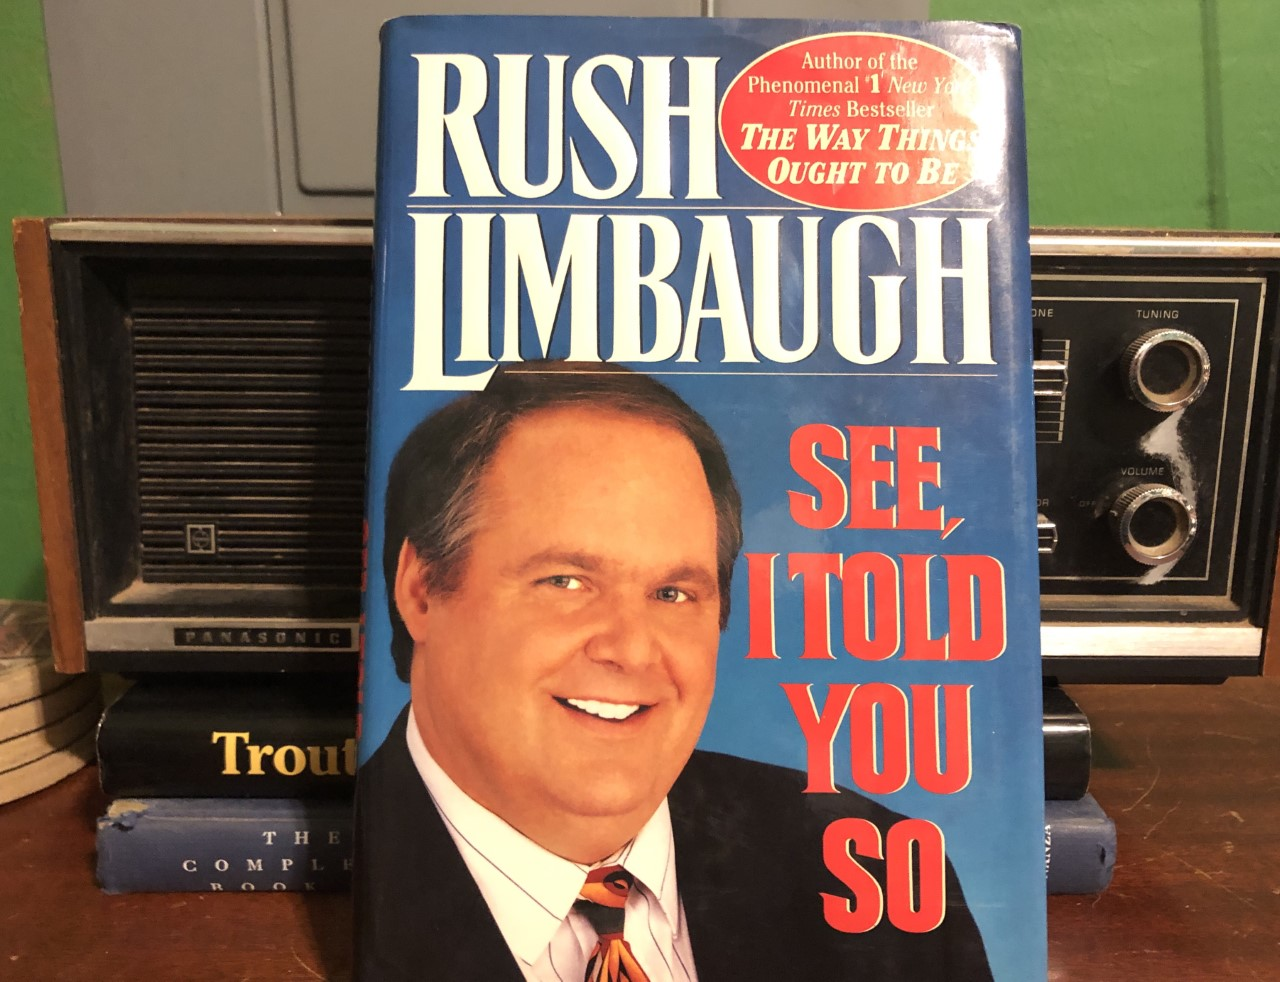 Limbaugh Book Cover in front of radio